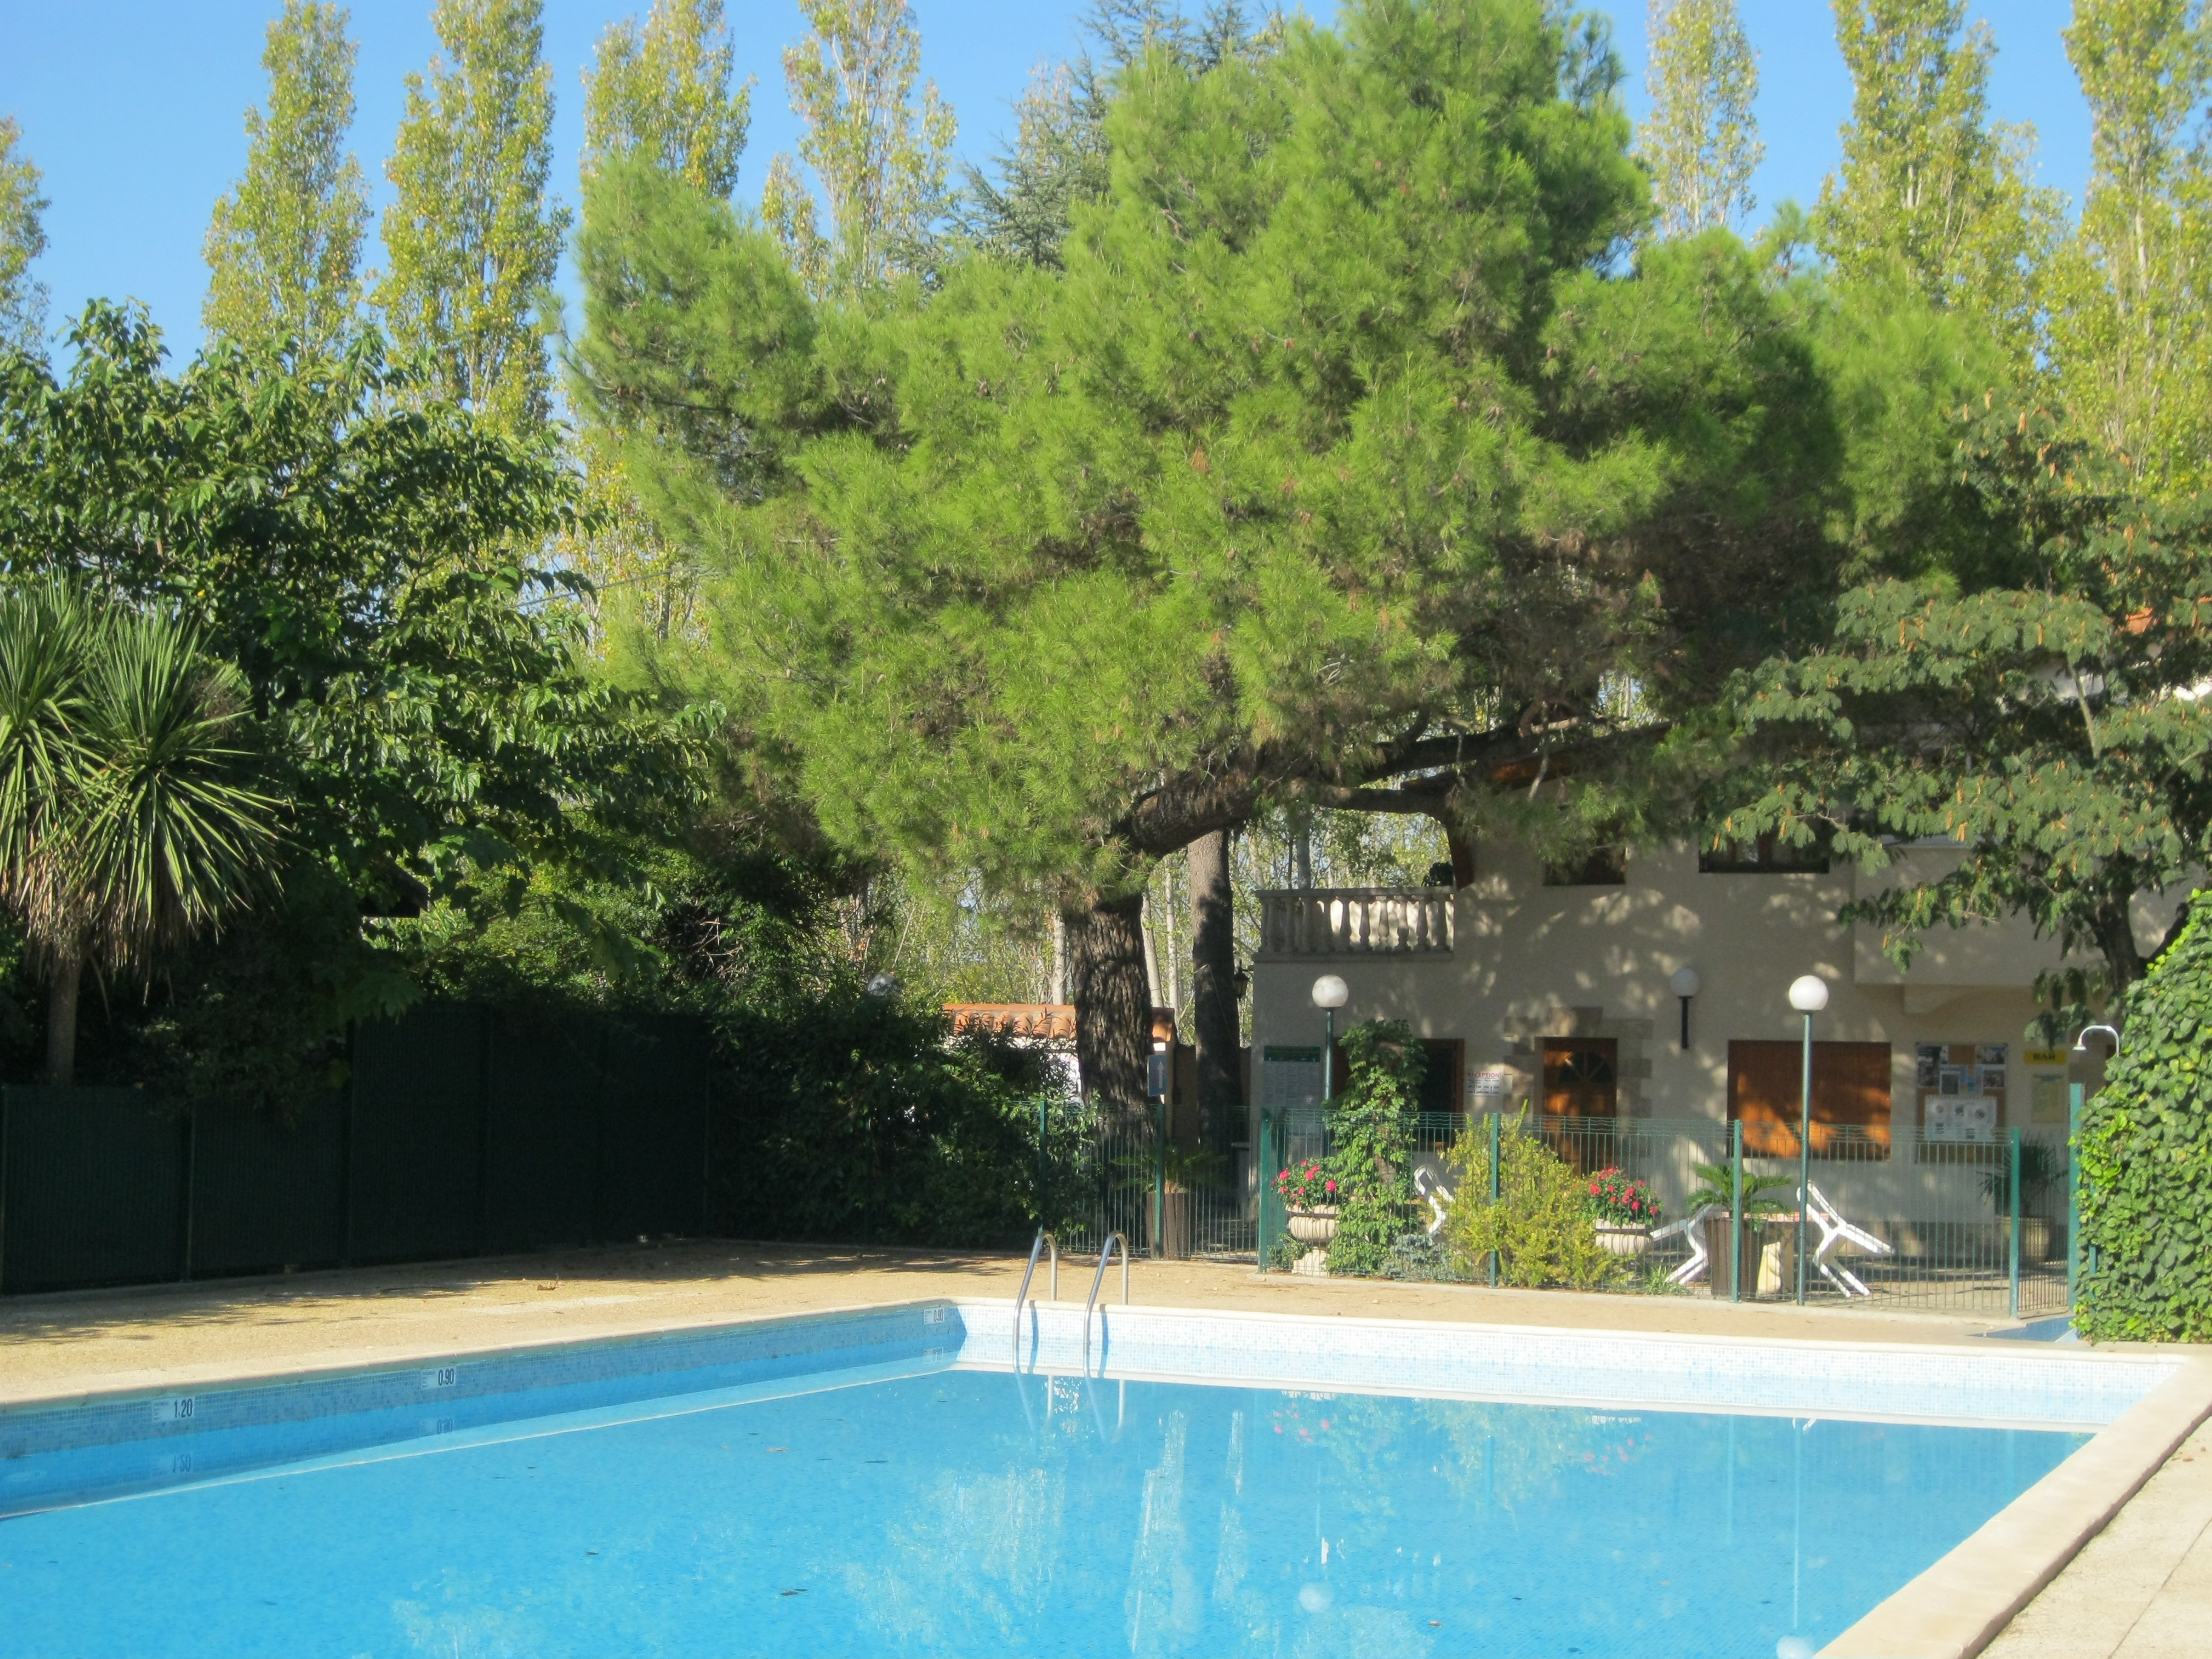 Camping familial pas cher, Languedoc